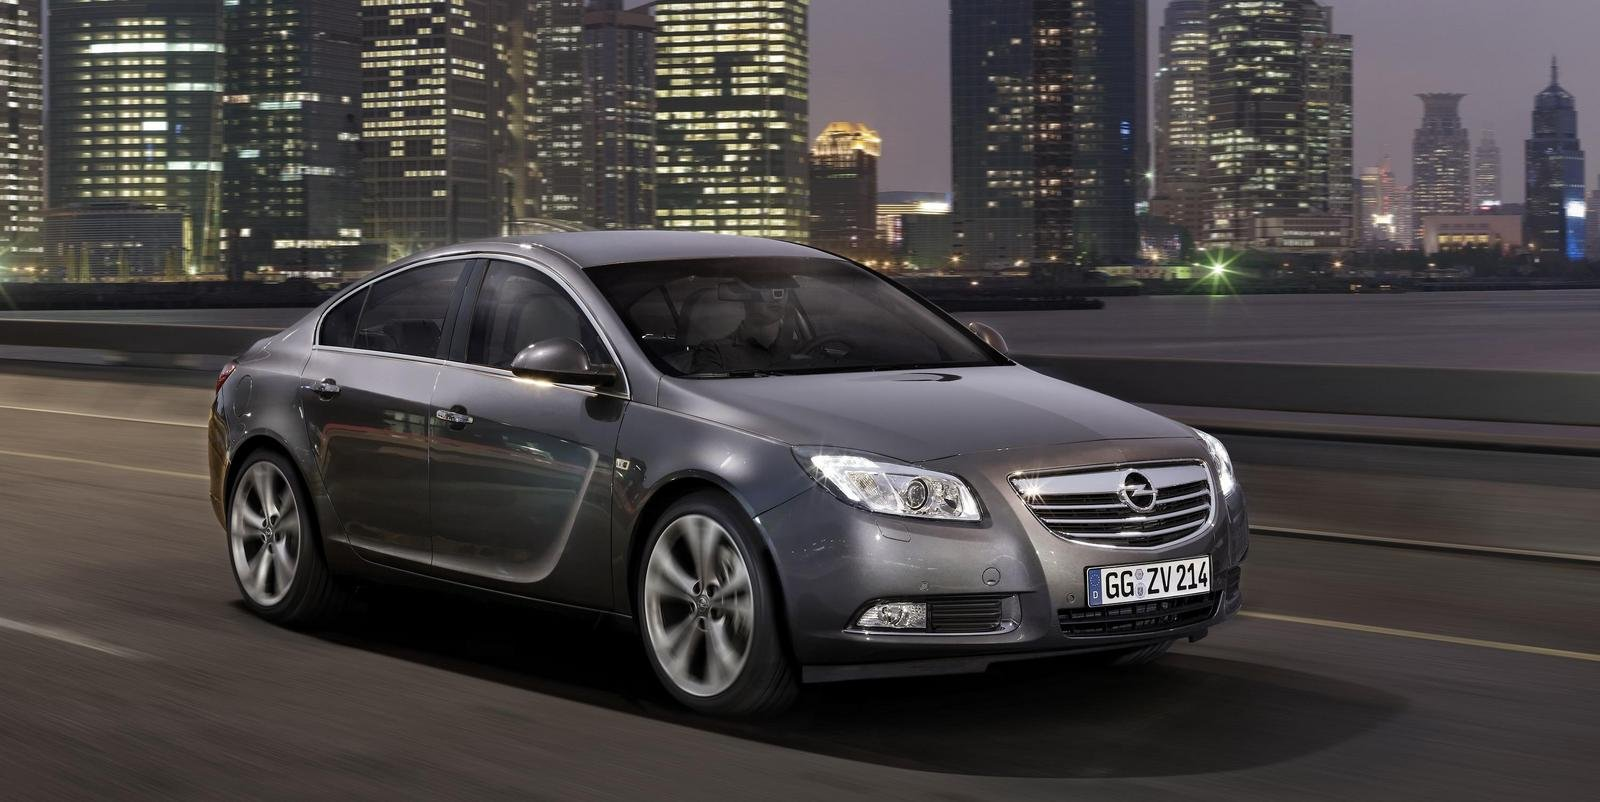 2009 opel insignia picture 283341 car review top speed. Black Bedroom Furniture Sets. Home Design Ideas